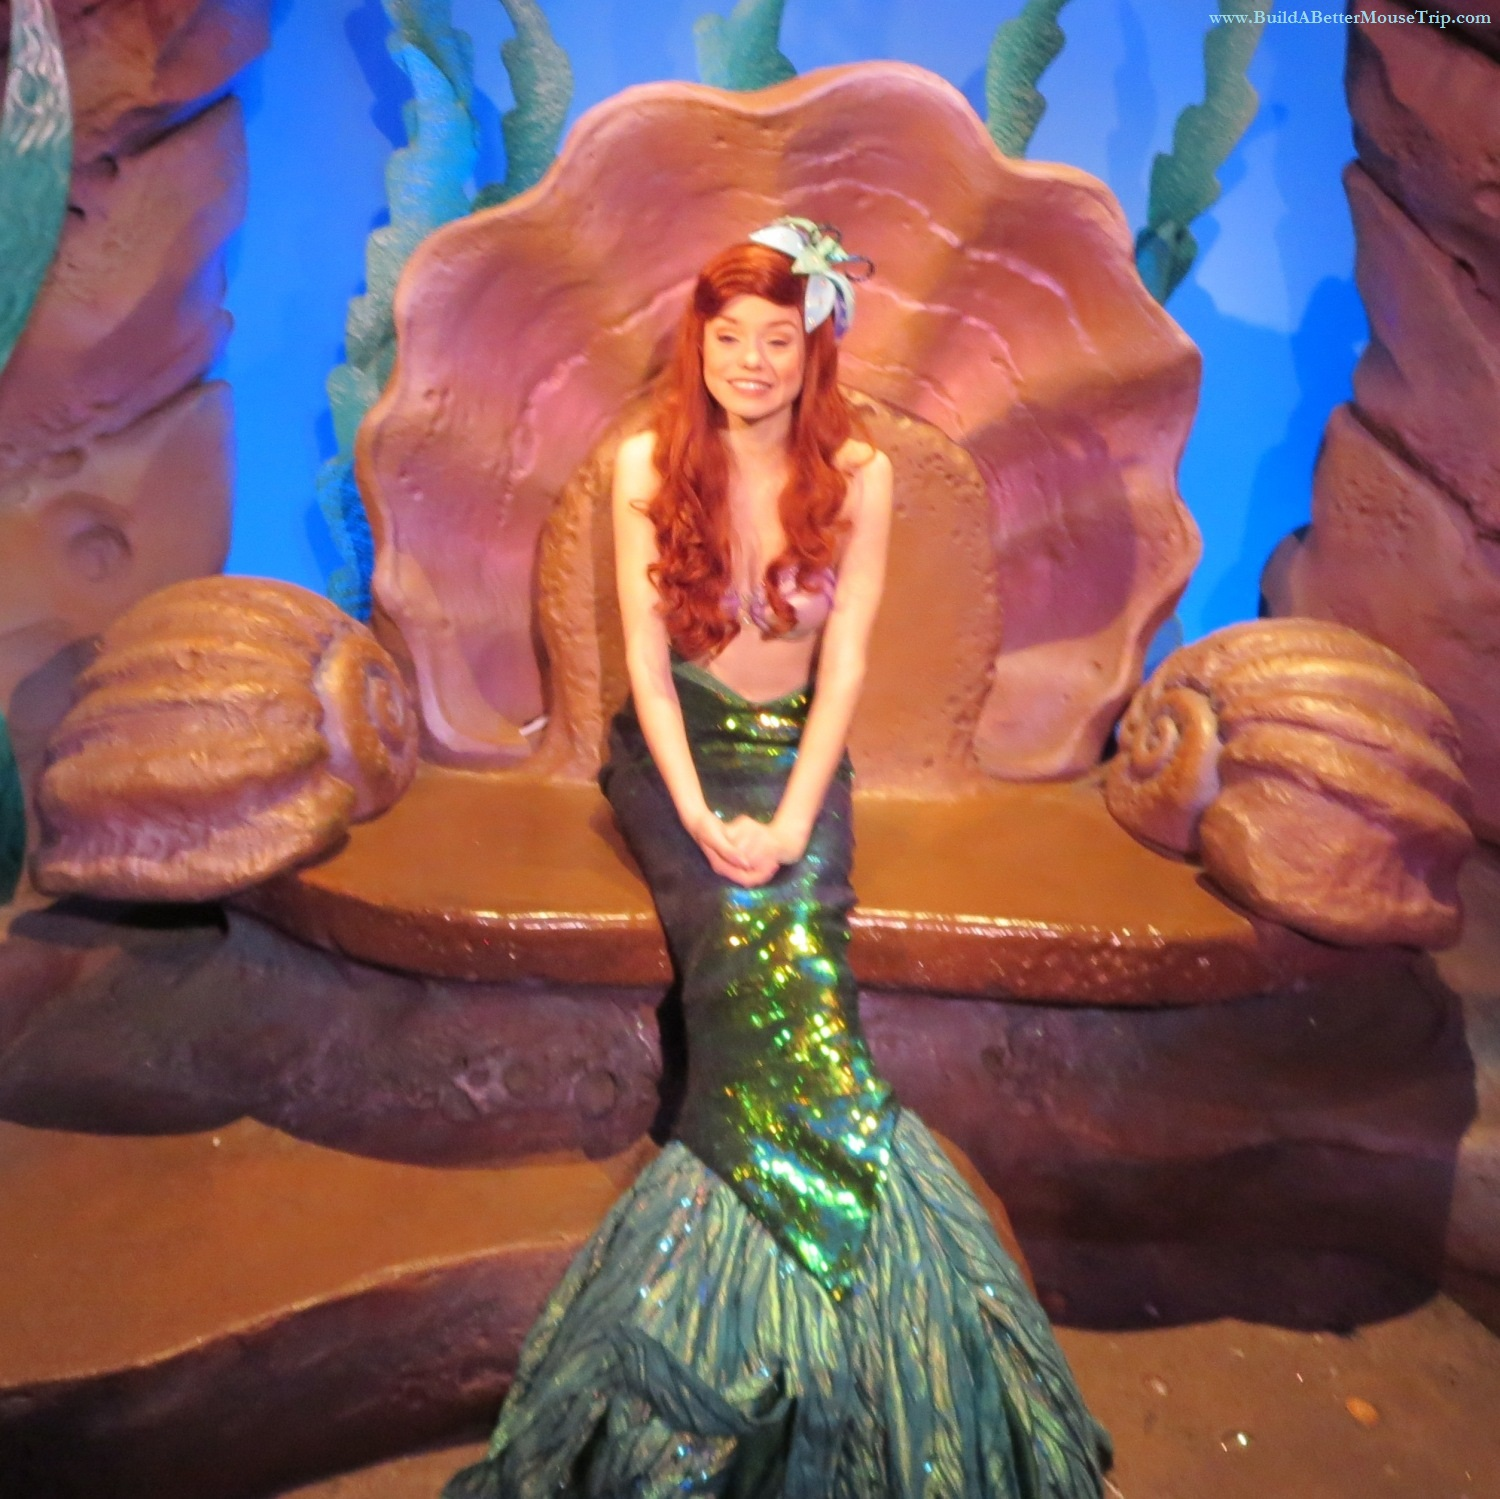 Ariel, the Little Mermaid, meets guests and poses with them for photos in her Grotto in the Magic Kingdom at Disney World.